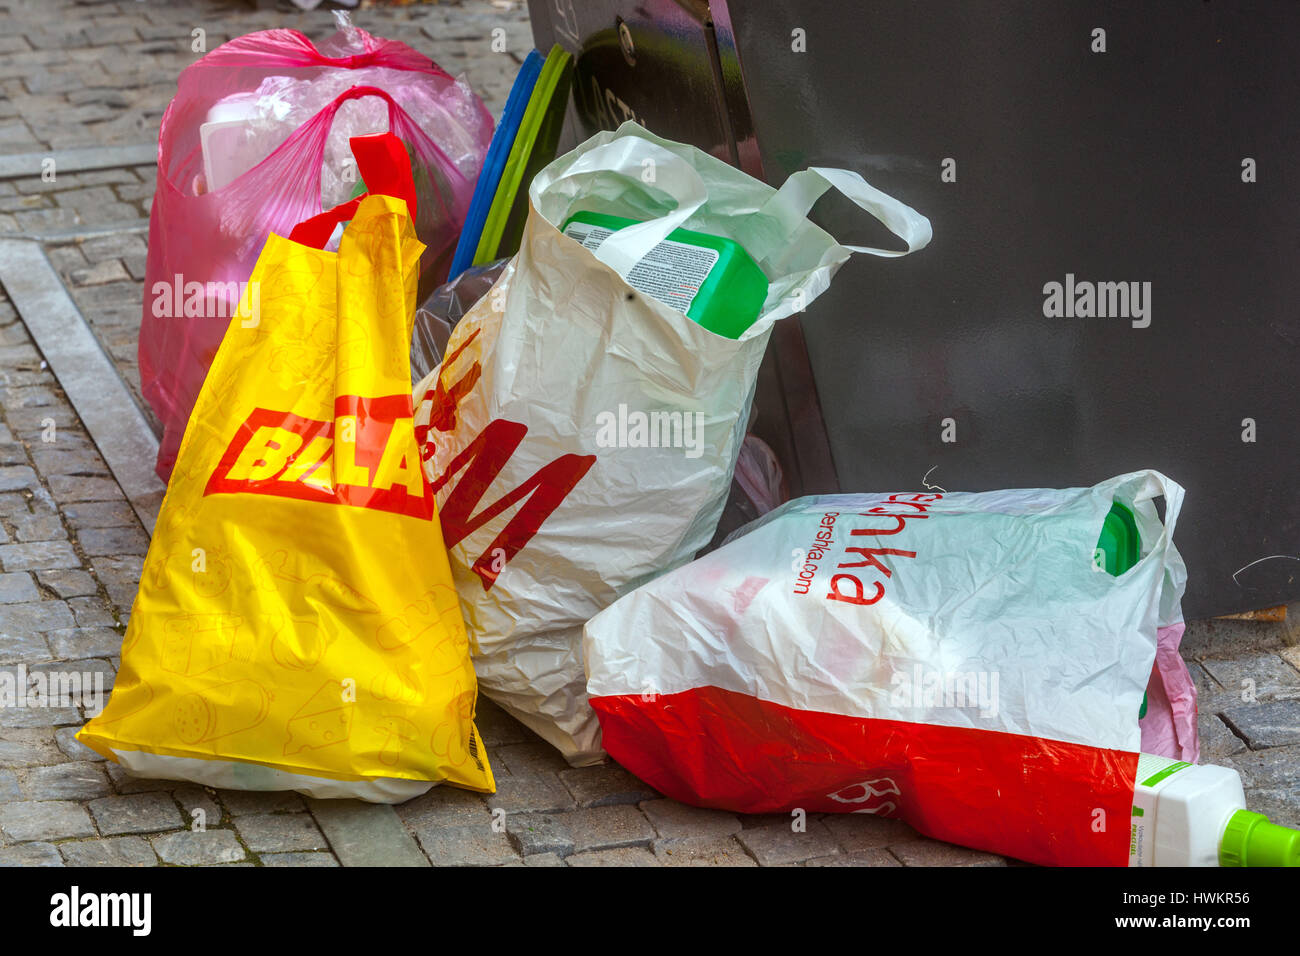 Rubbish waste plastic bags at bin, Shopping bags - Stock Image